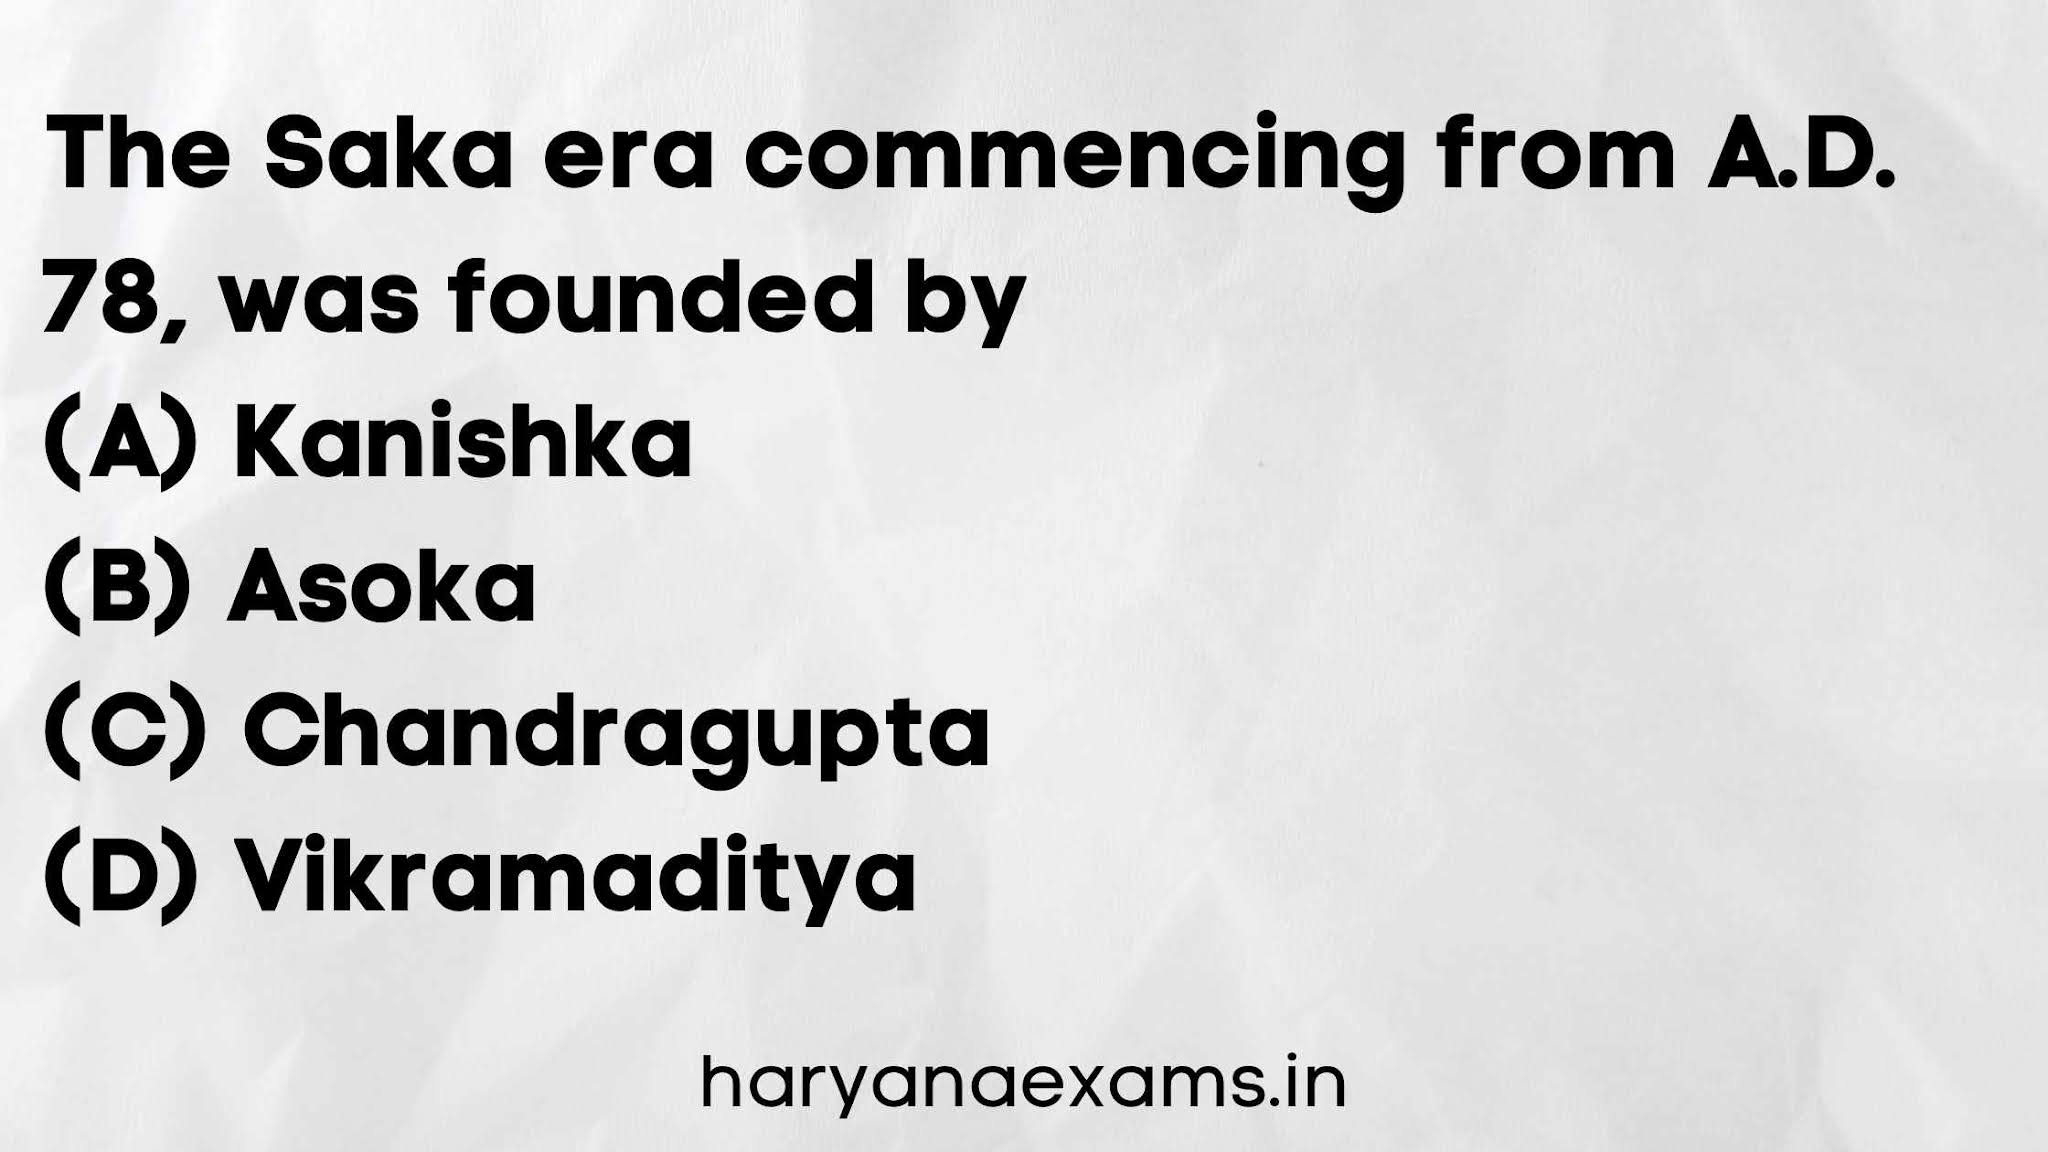 The Saka era commencing from A.D. 78, was founded by